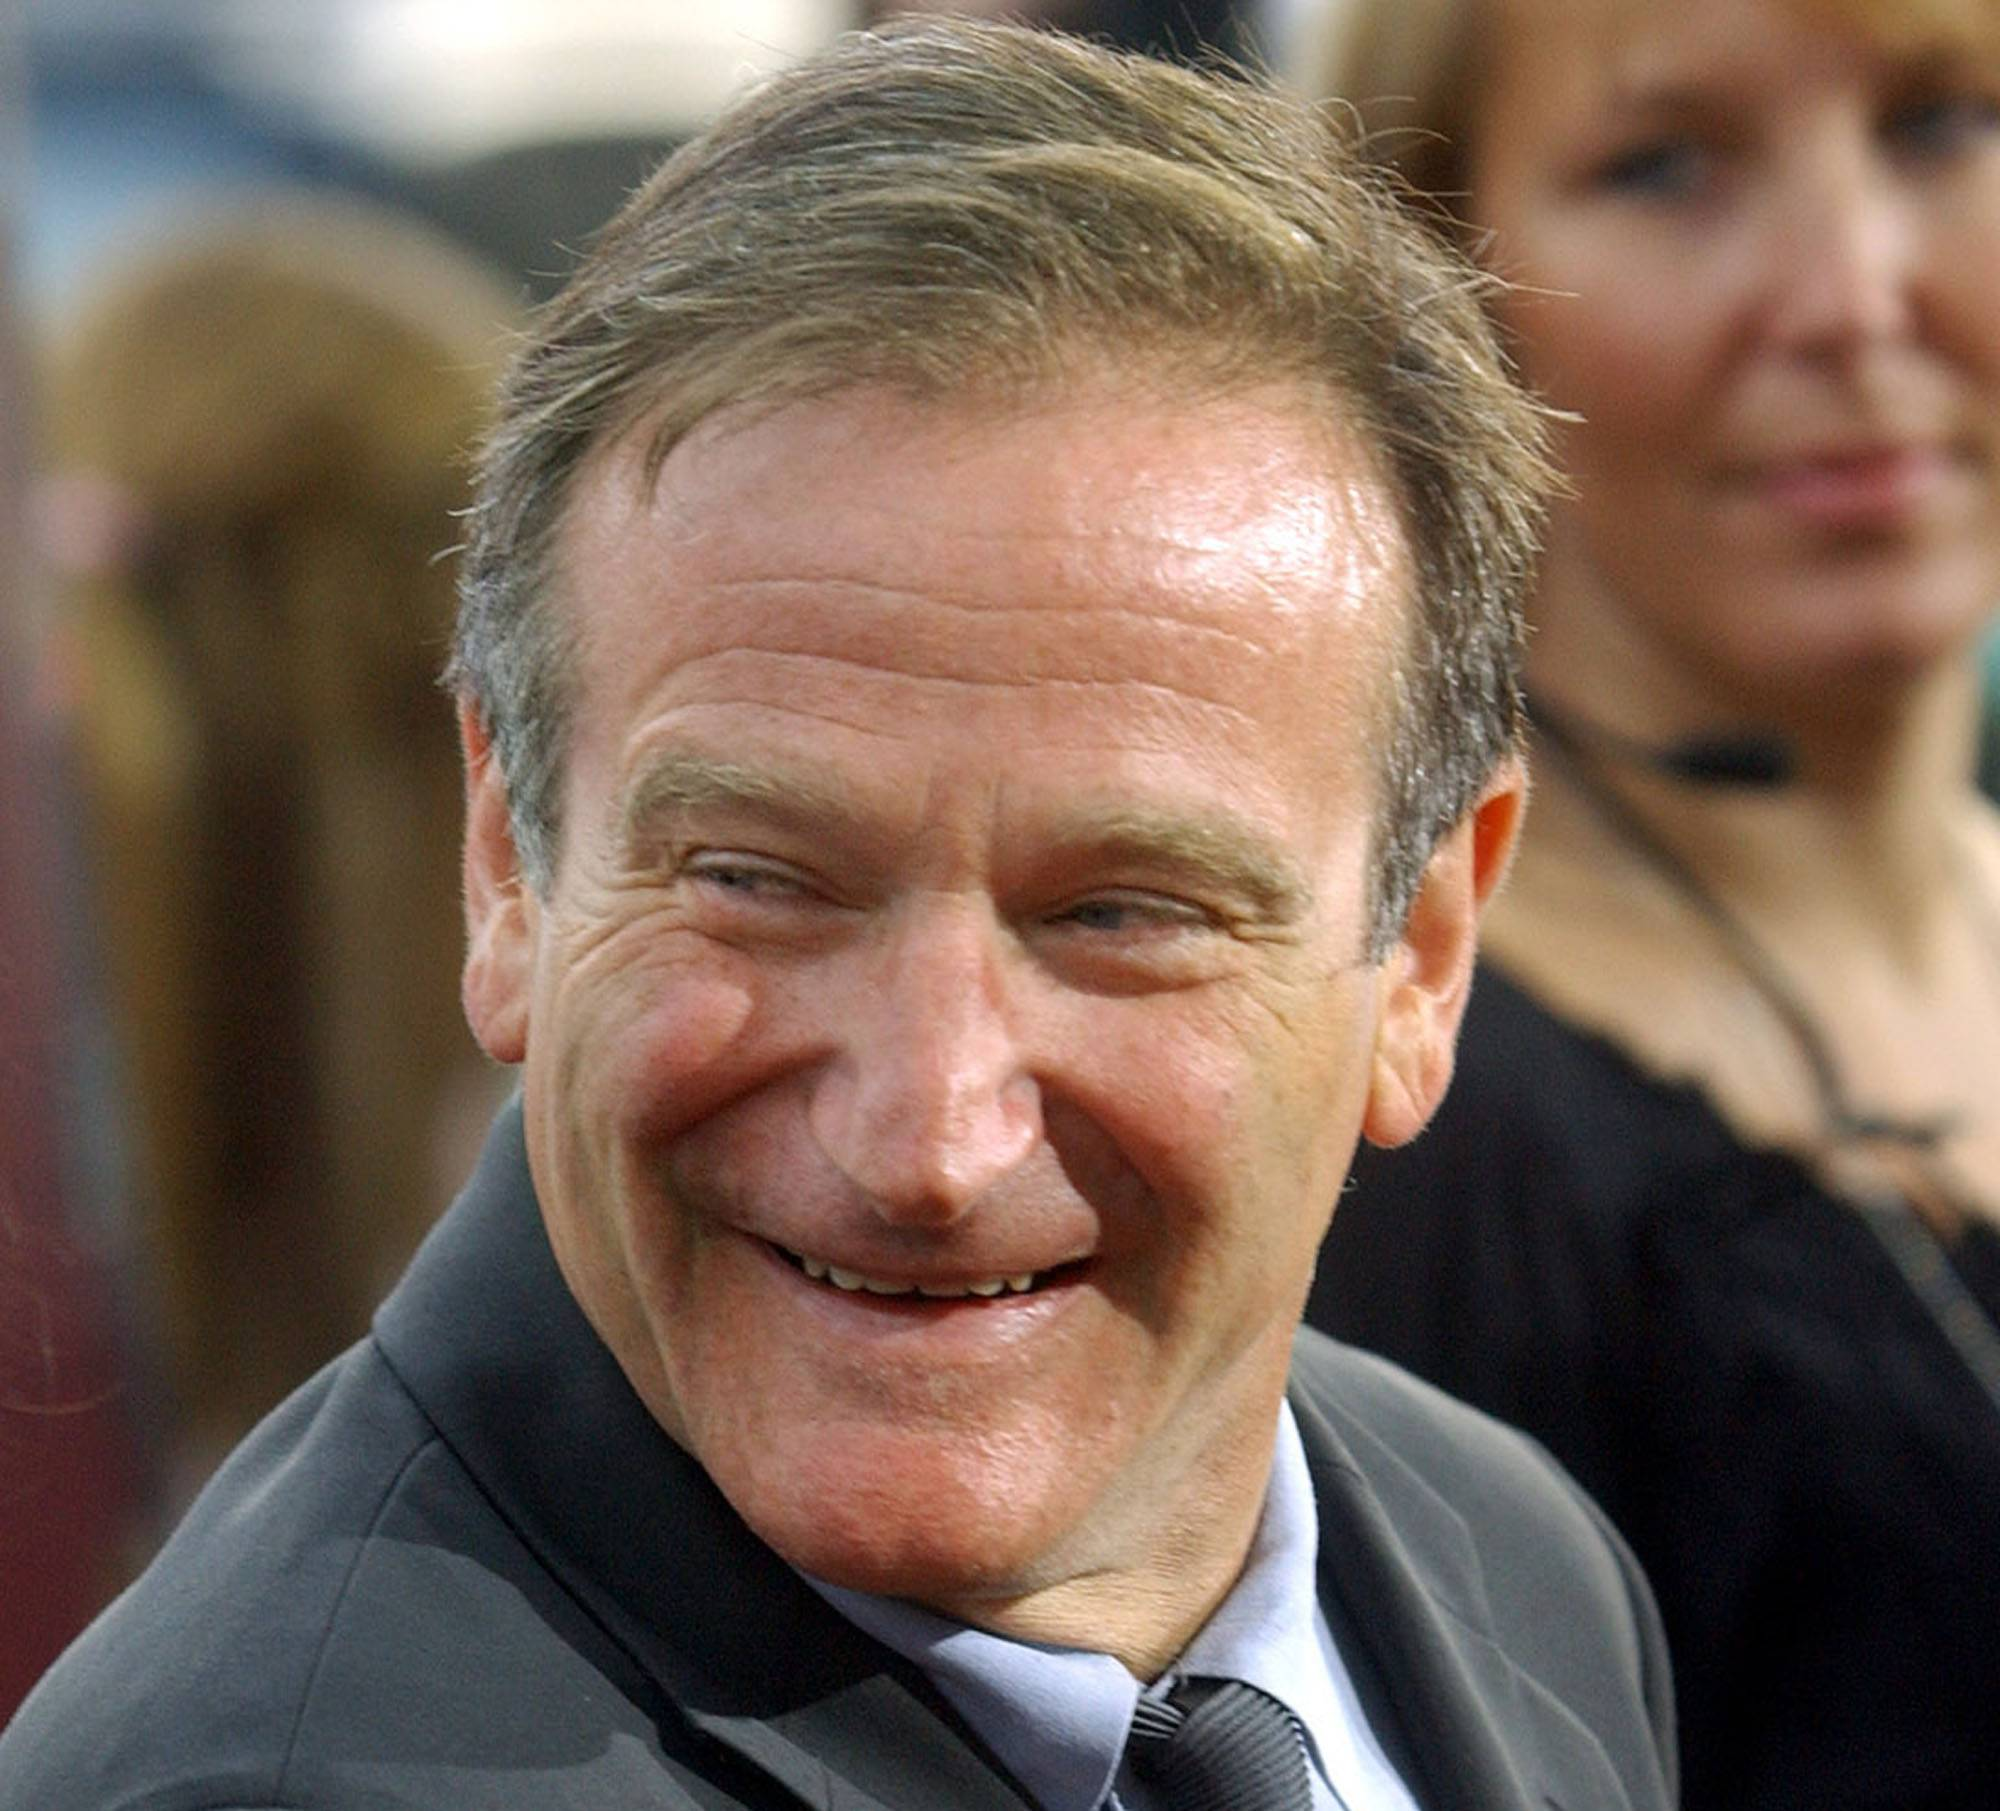 Robin Williams was found dead this morning at his California home, the Marin County sheriff's office says.